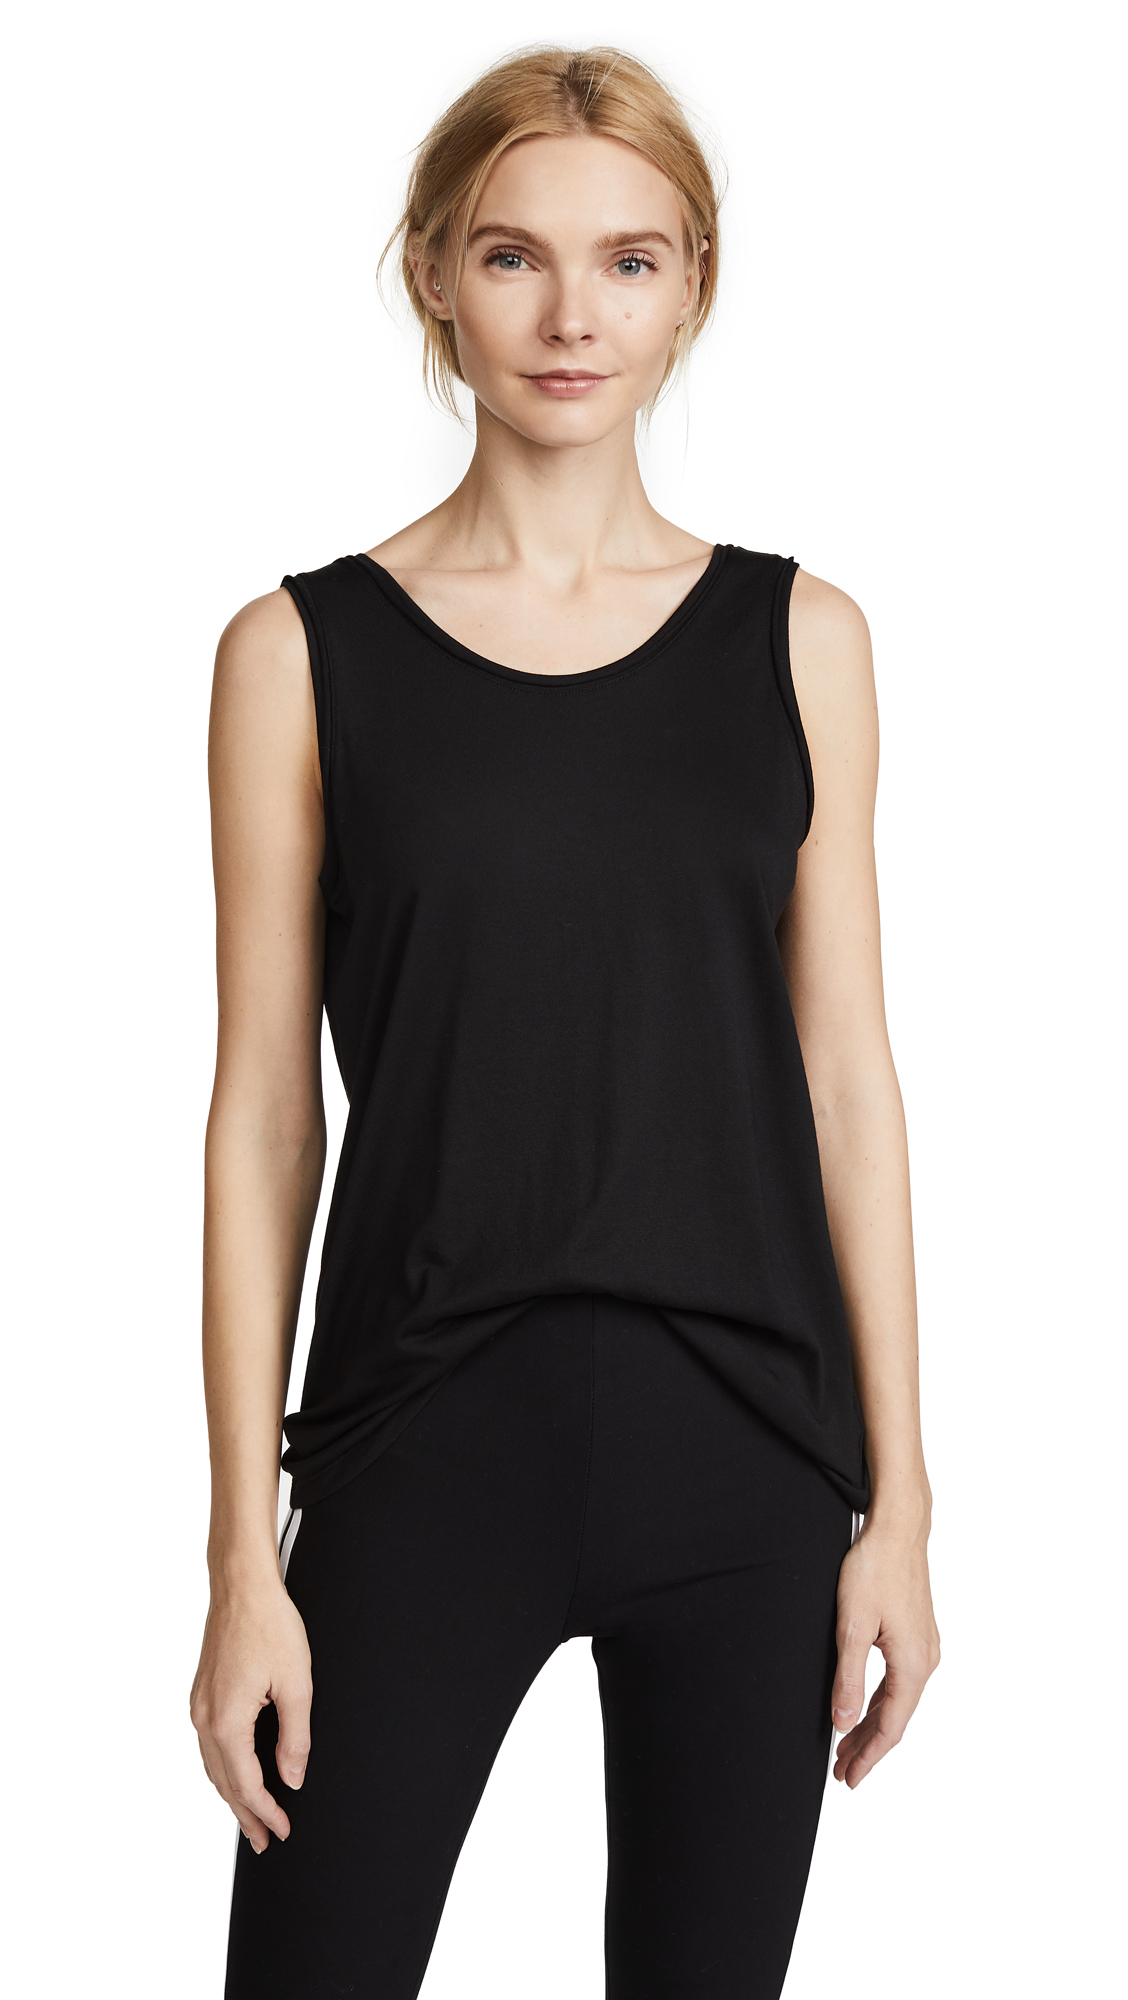 Theory Insar 2 Tank Top - Black